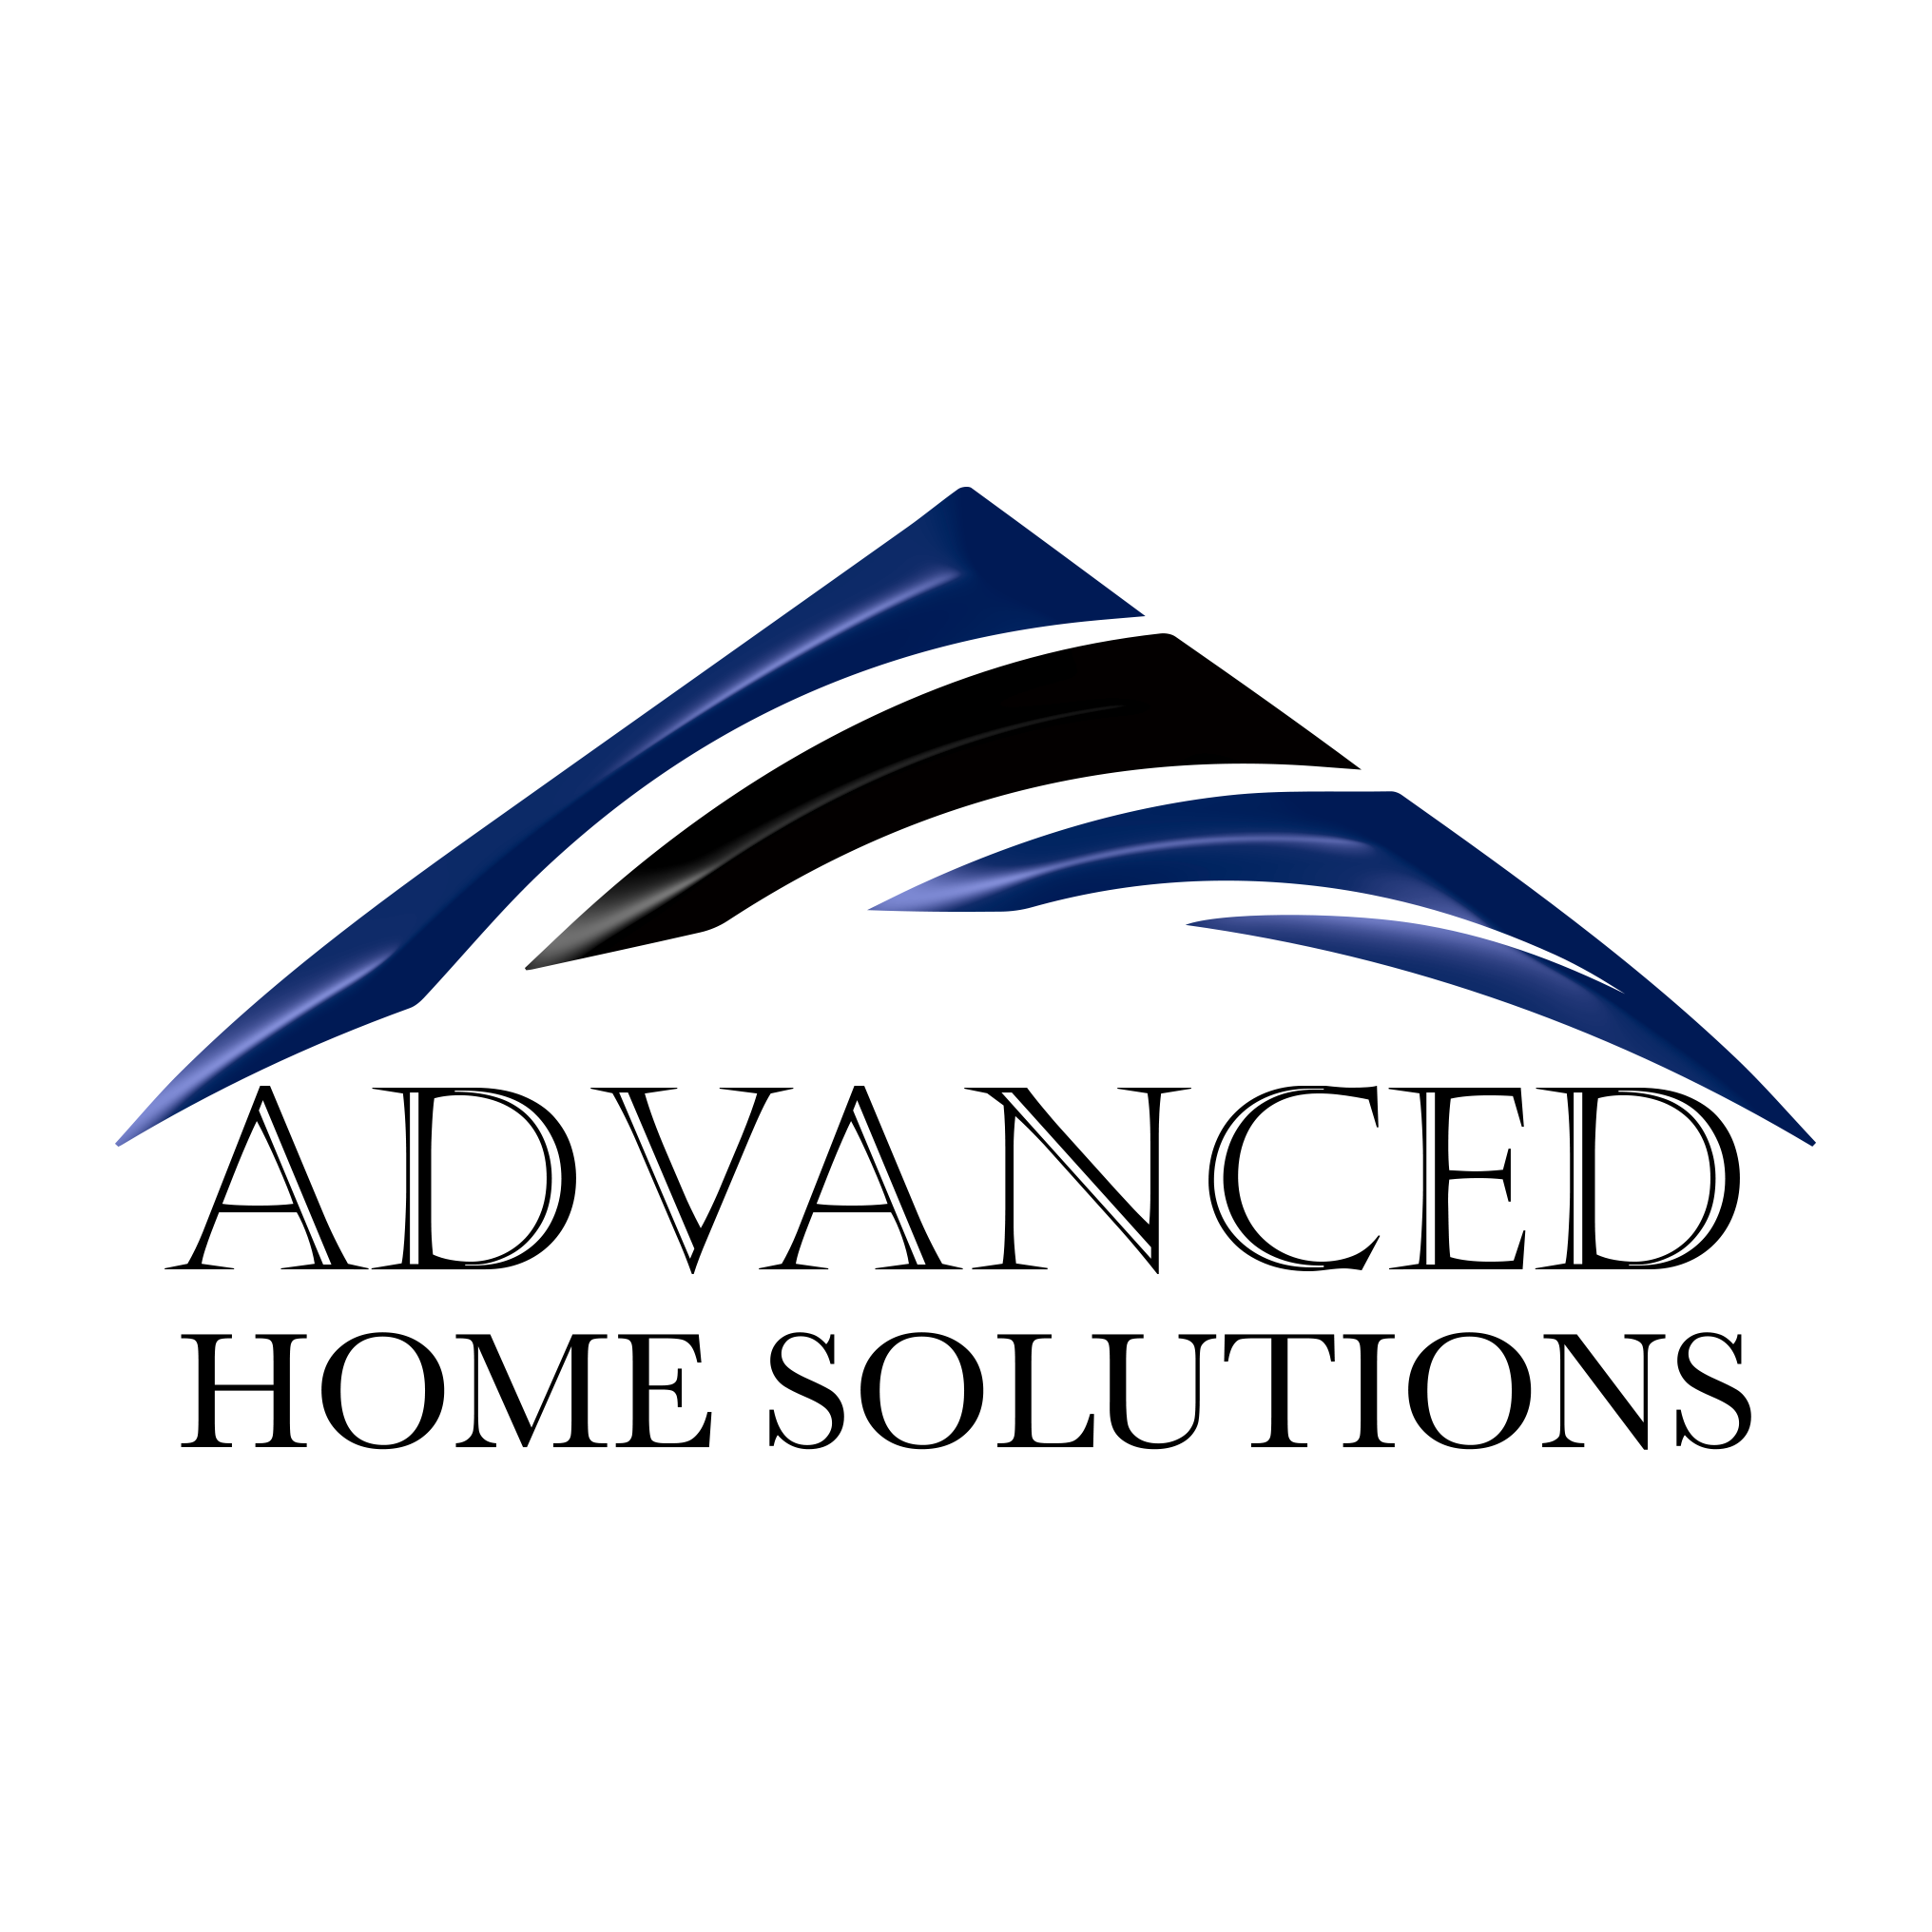 Advanced home solutions in omaha ne 68137 for Advanced home